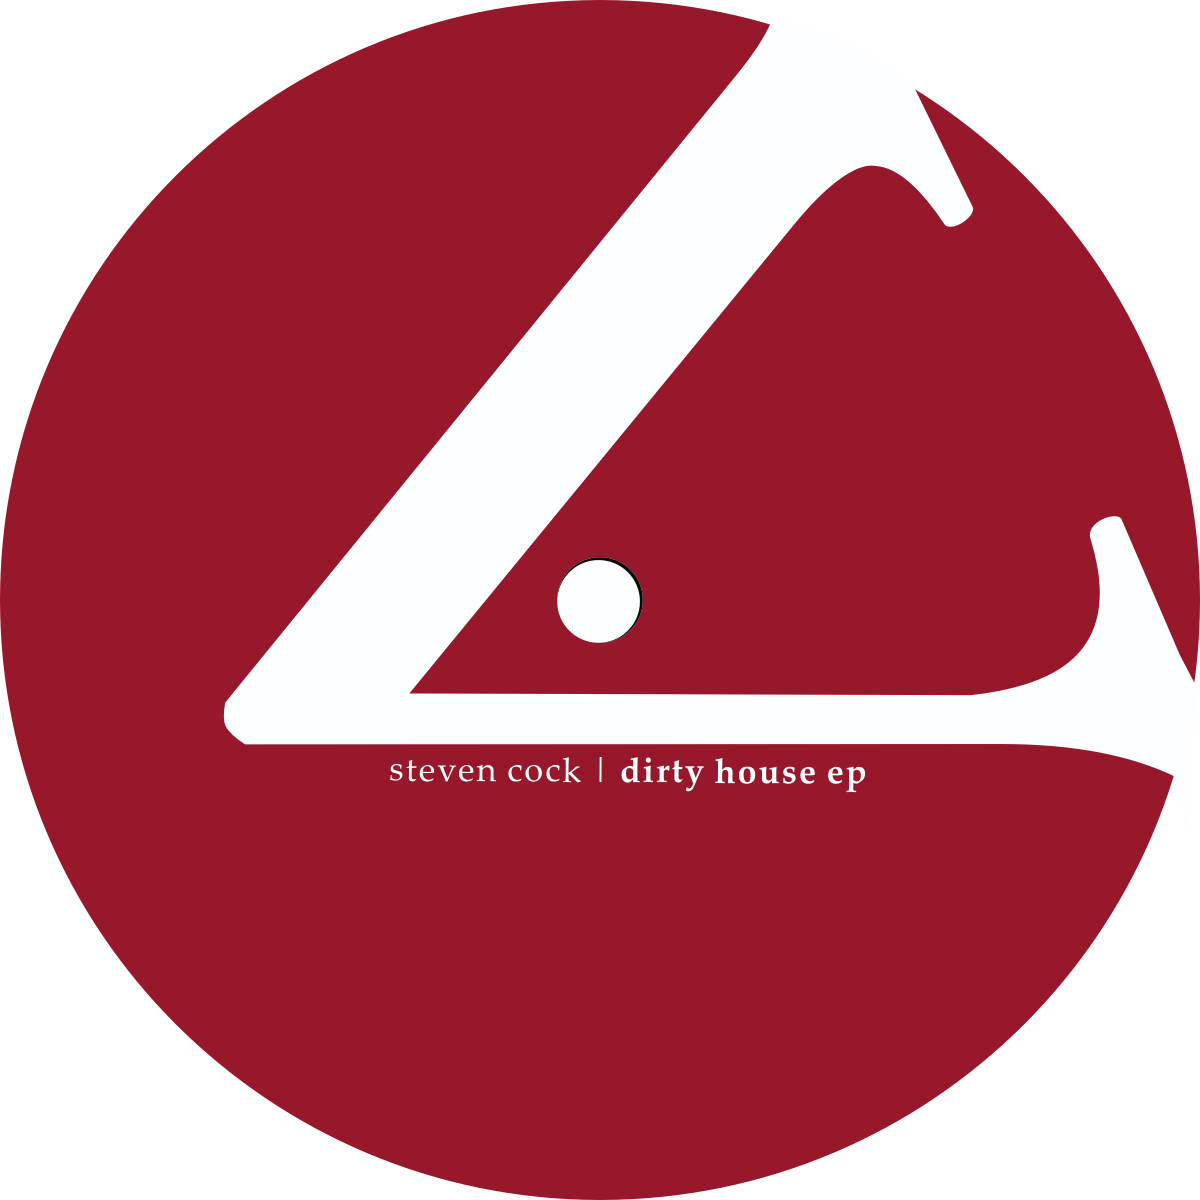 Steven Cock - Dirty House EP